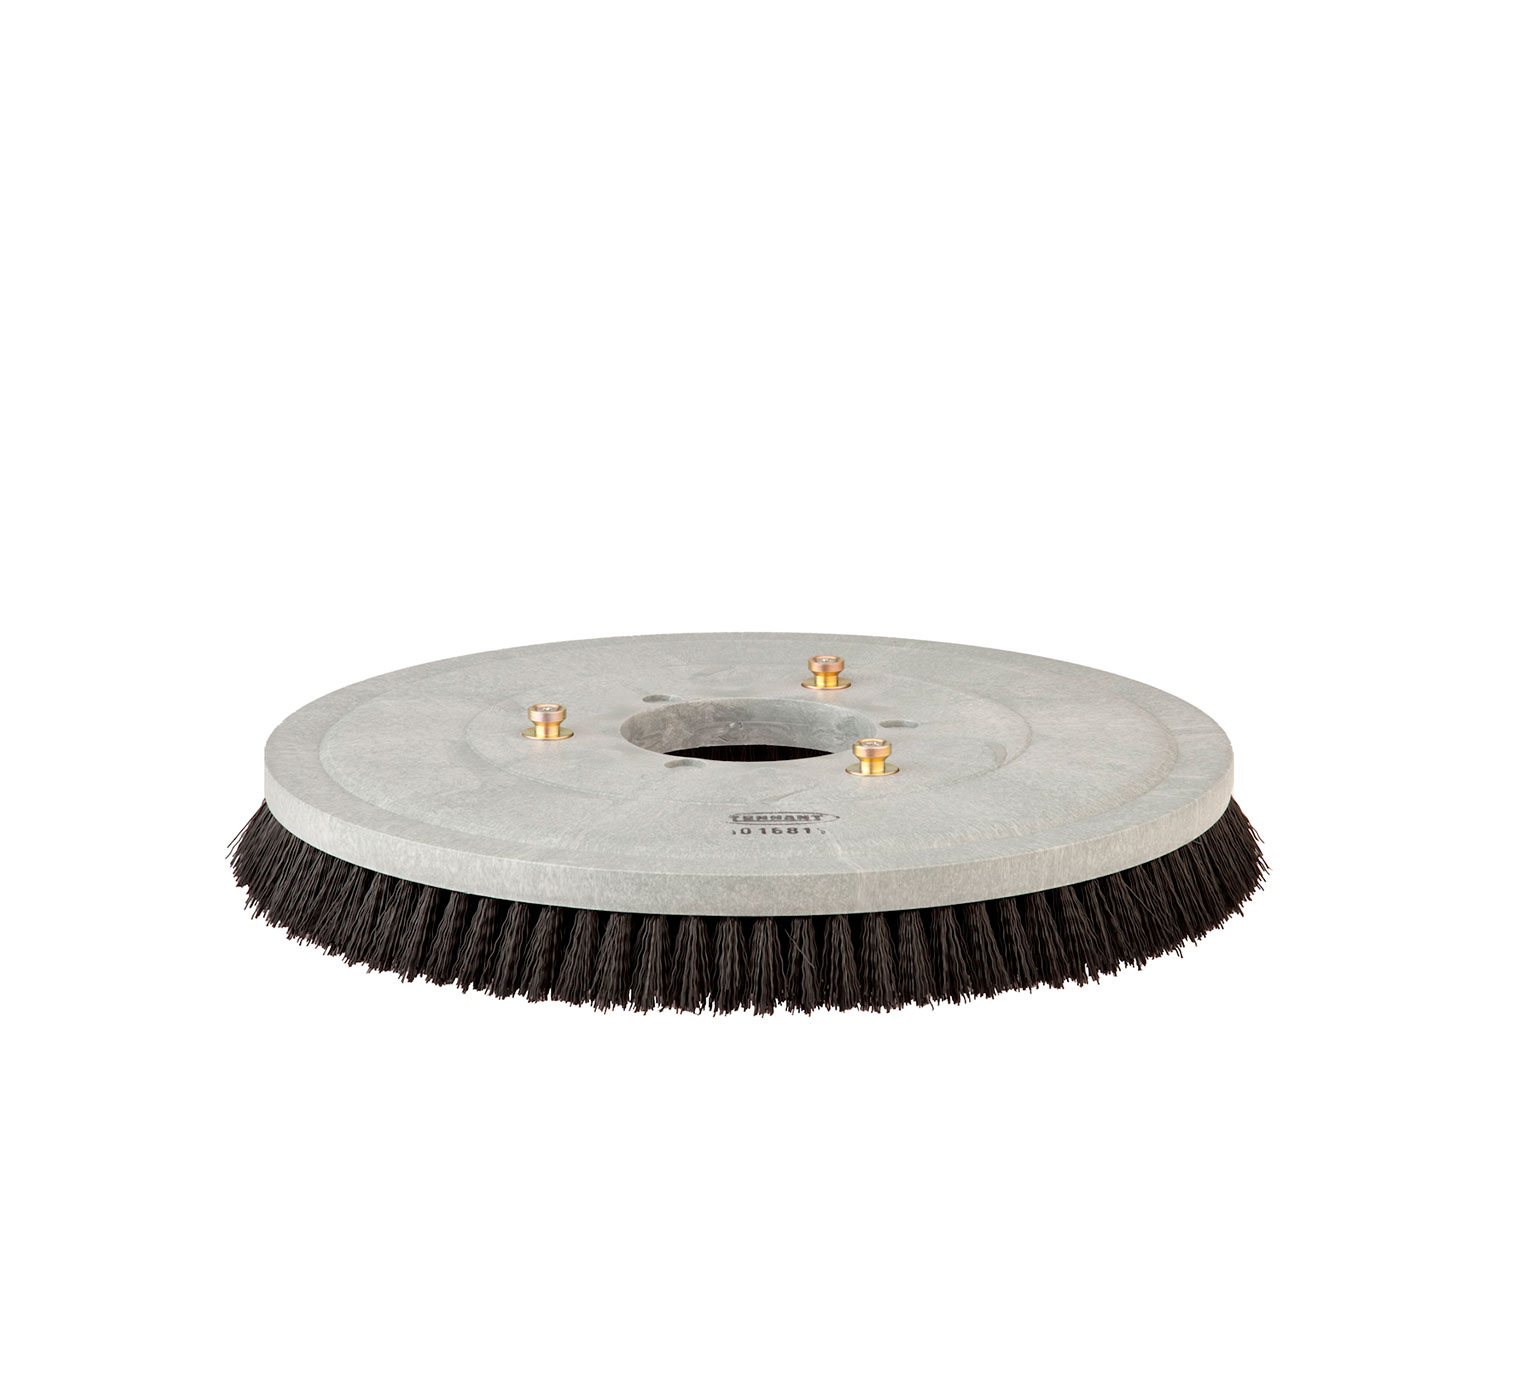 1016811 Polypropylene Disk Scrub Brush Assembly – 20 in / 508 mm alt 1